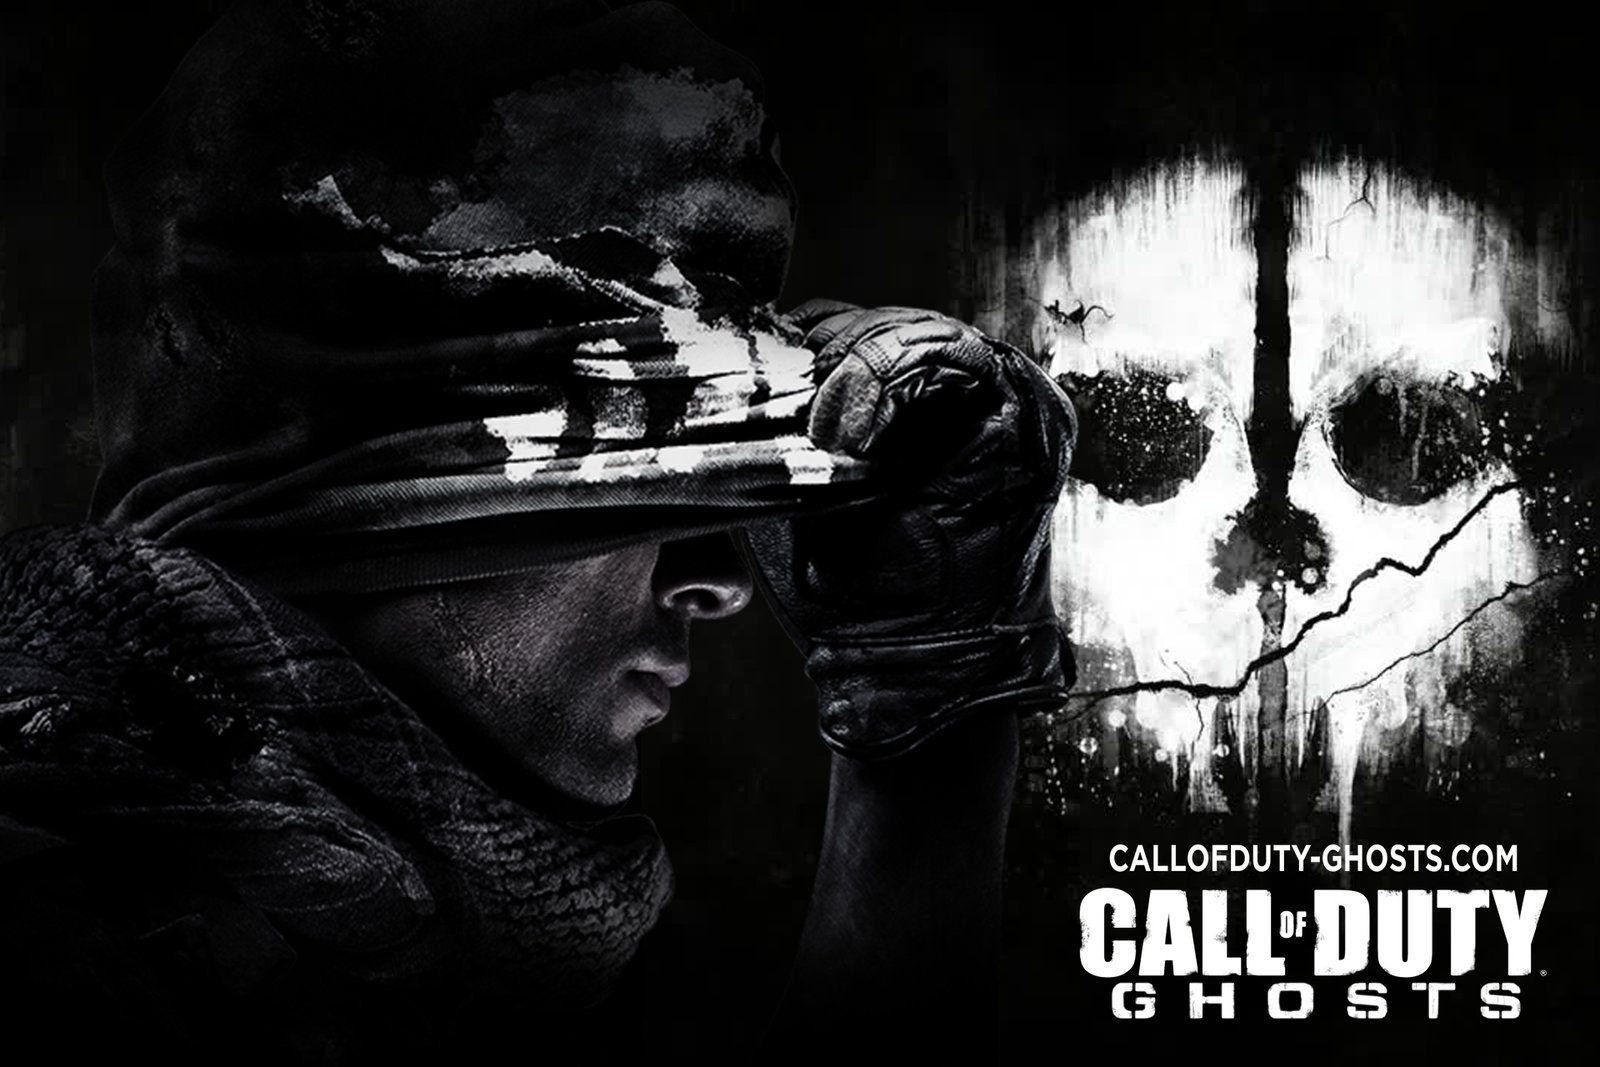 Mw2 Ghost Wallpaper Hd Call Of Duty Ghosts Wallpapers Wallpaper Cave